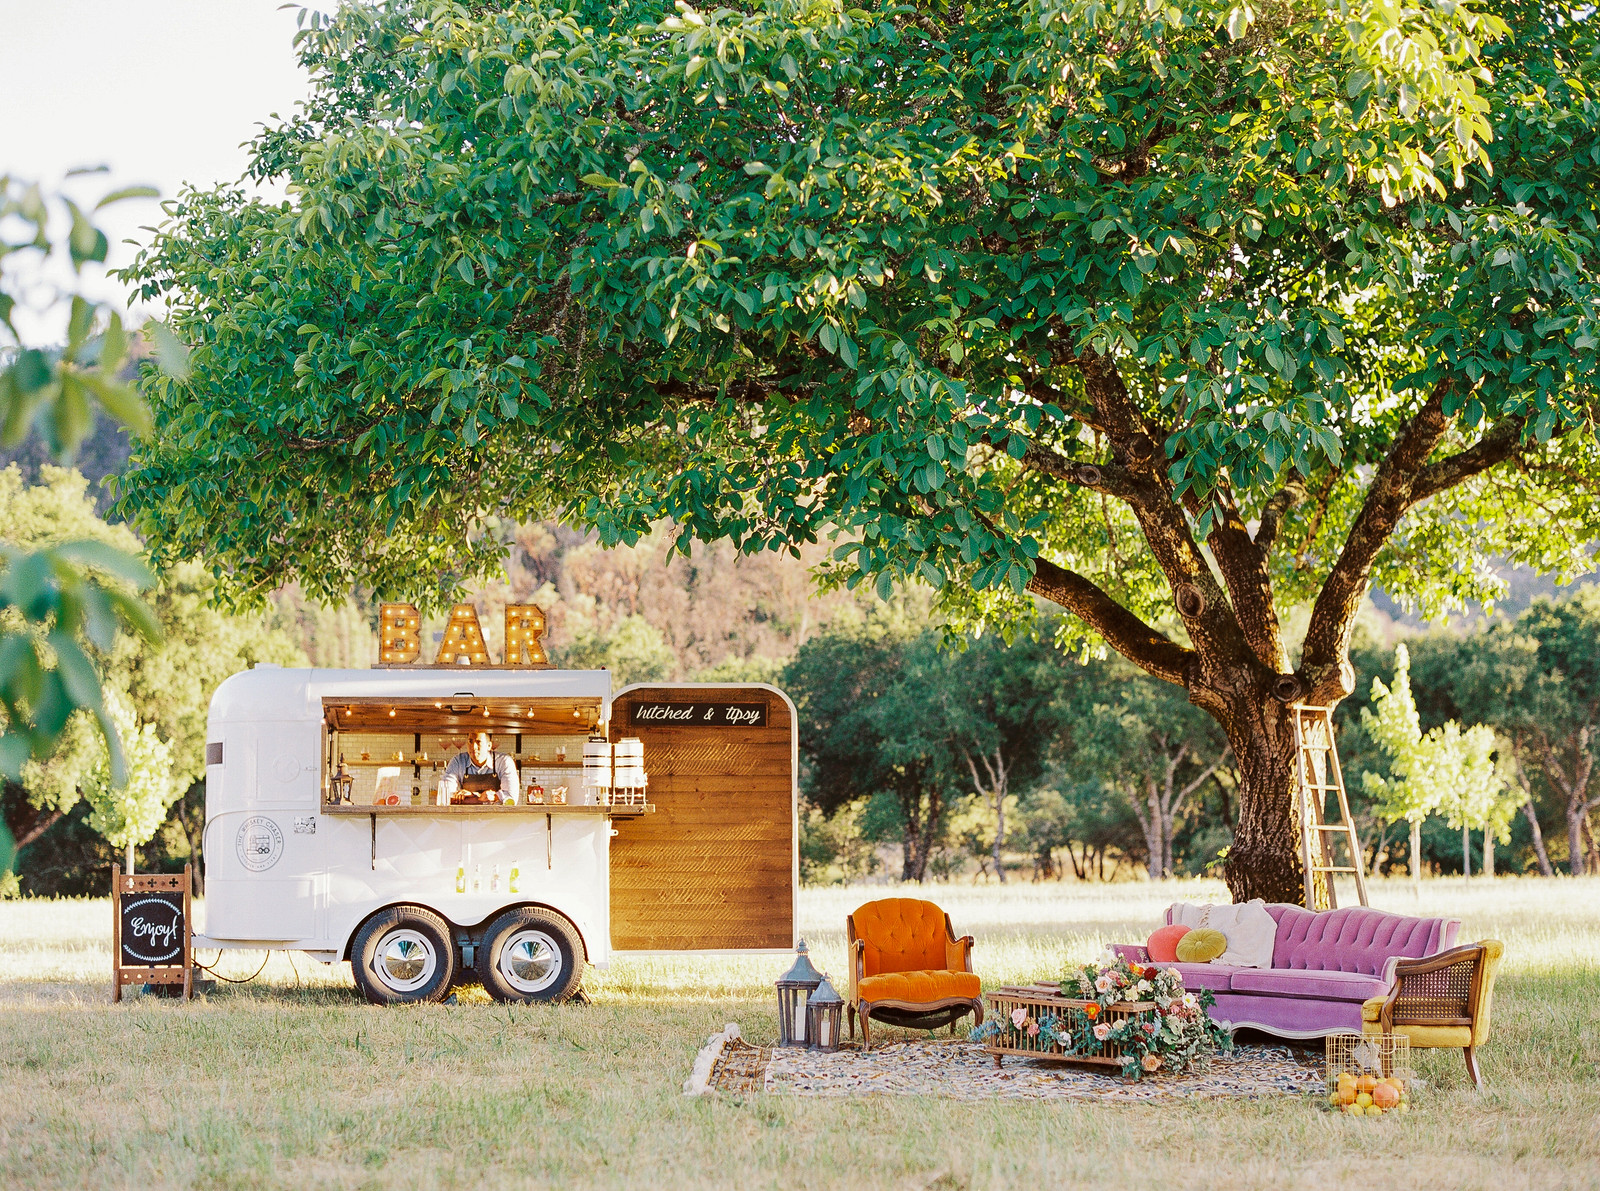 Triple SSS Ranch Calistoga Wedding Napa Valley Sonoma Planning and Design Vintage Furniture Rental One True Love Whiskey Chaser Bar